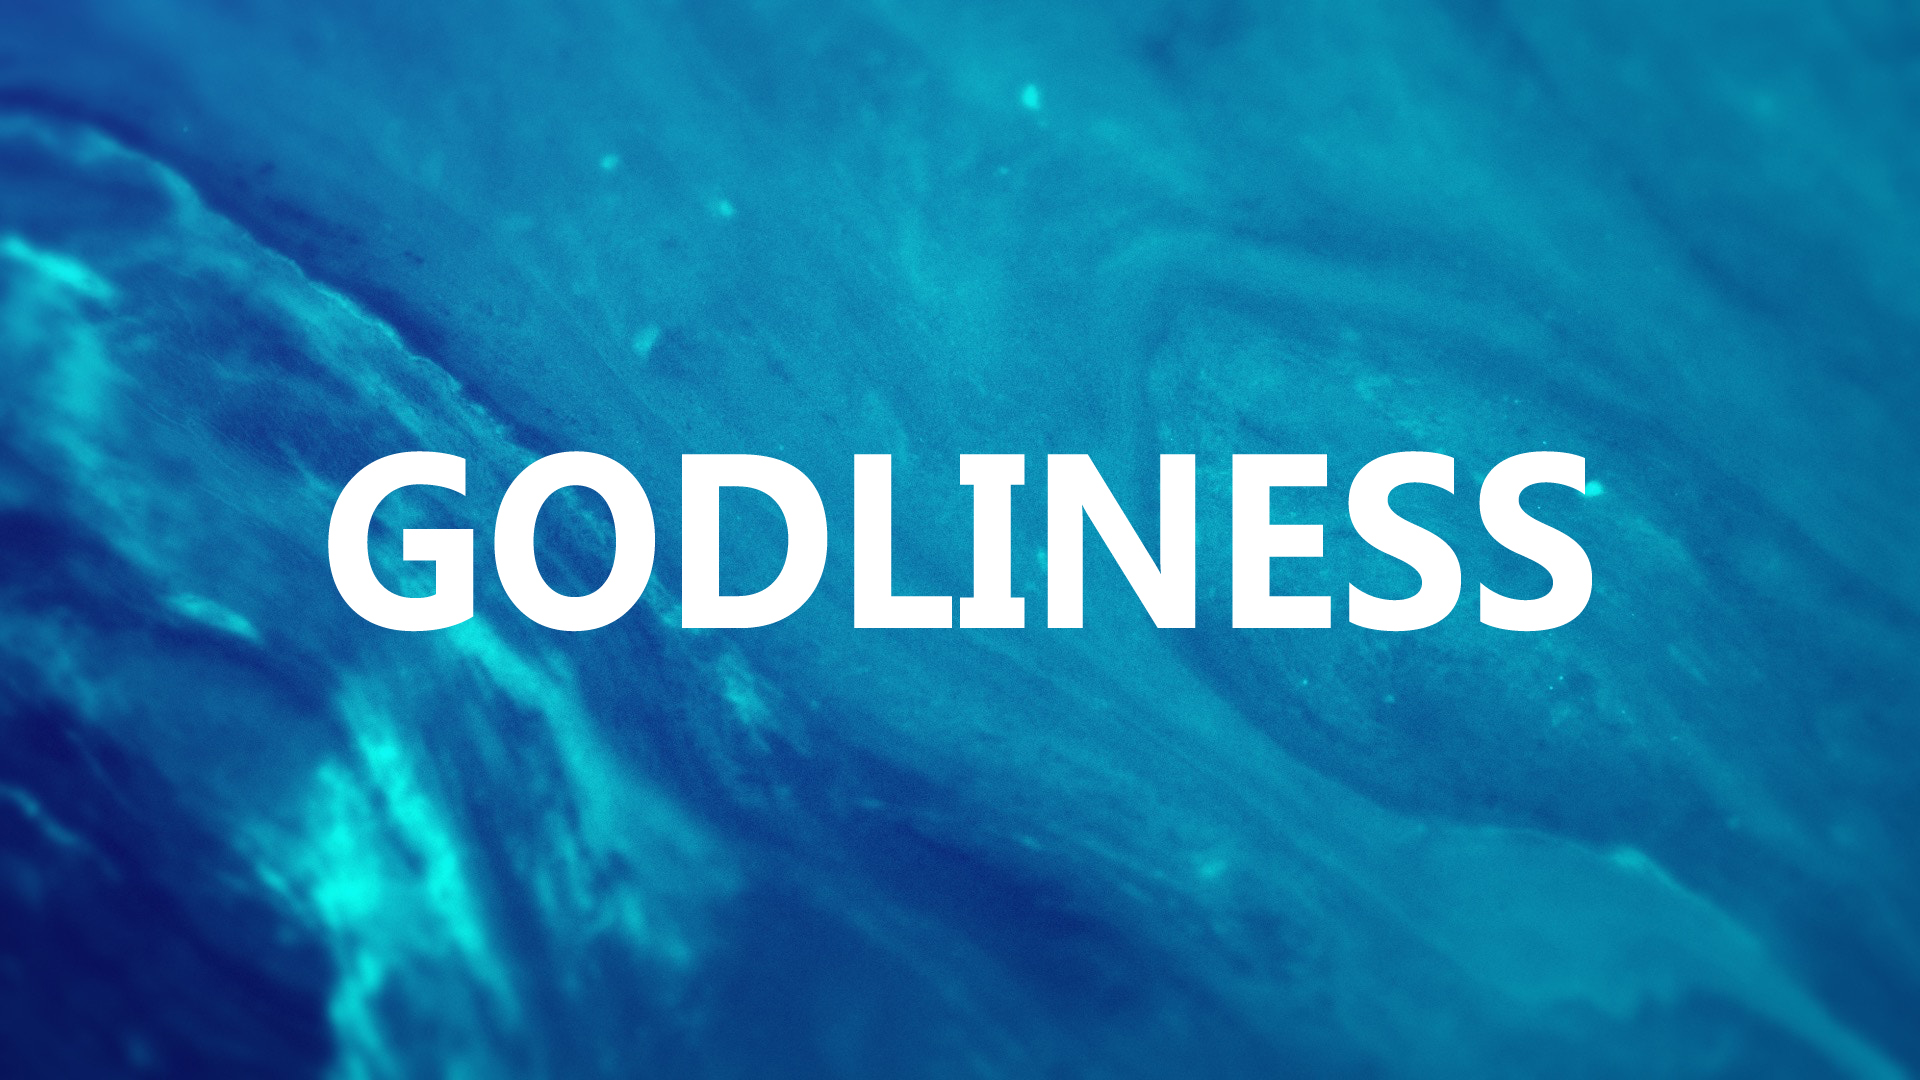 Godliness-The Desire and the Desicion<br/>Vinod Samuel